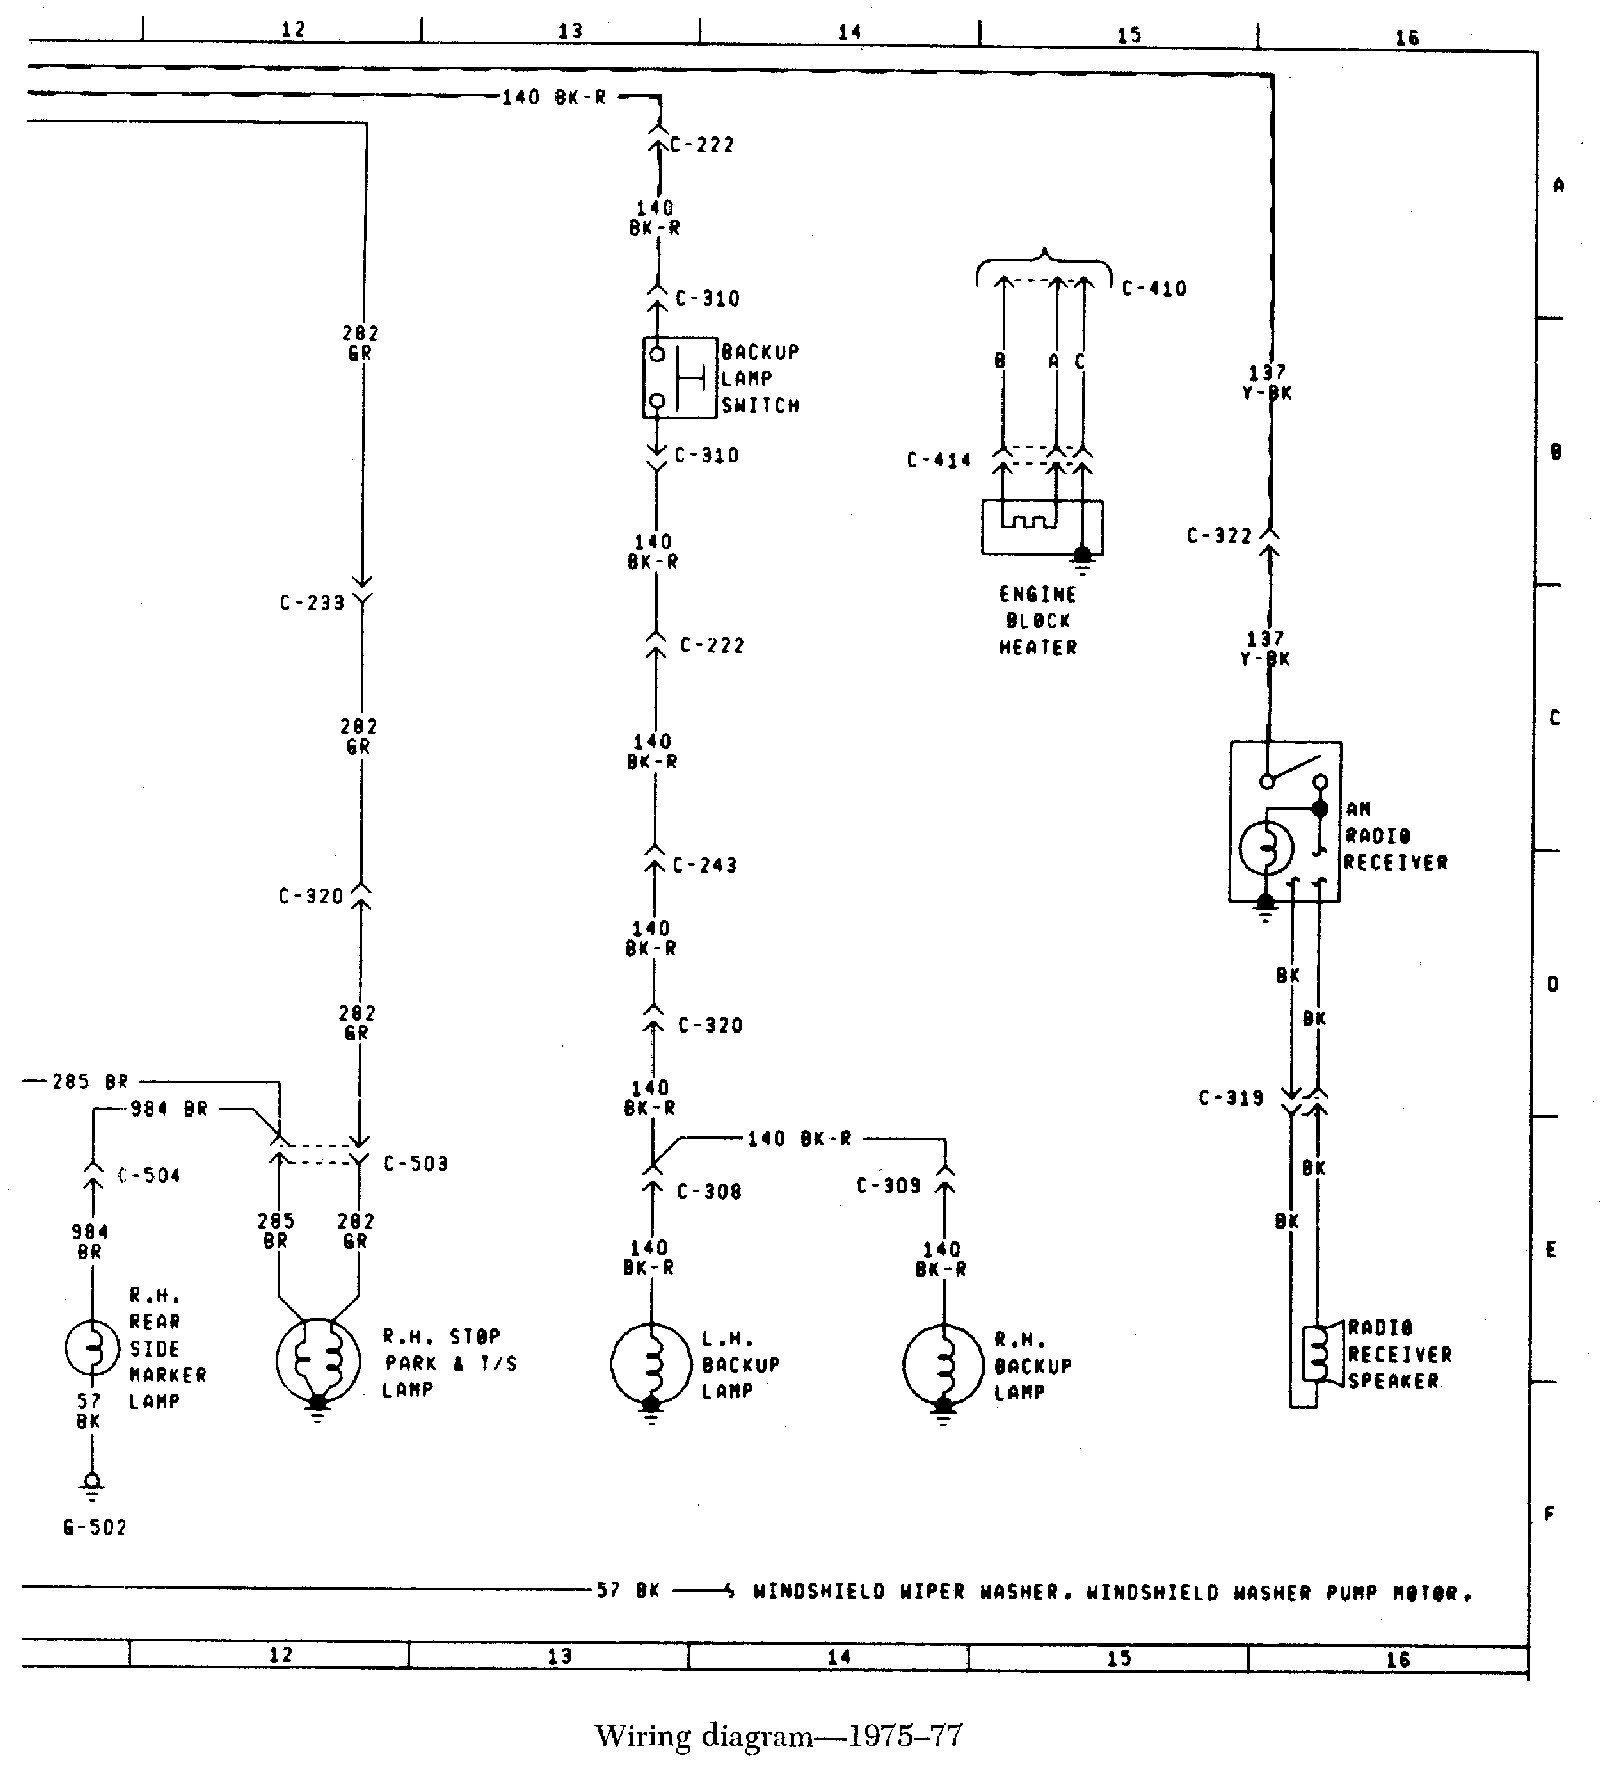 3 sd rotary switch wiring diagram 6 position rotary switch wiring diagram 3 position selector switch wiring diagram sample #12